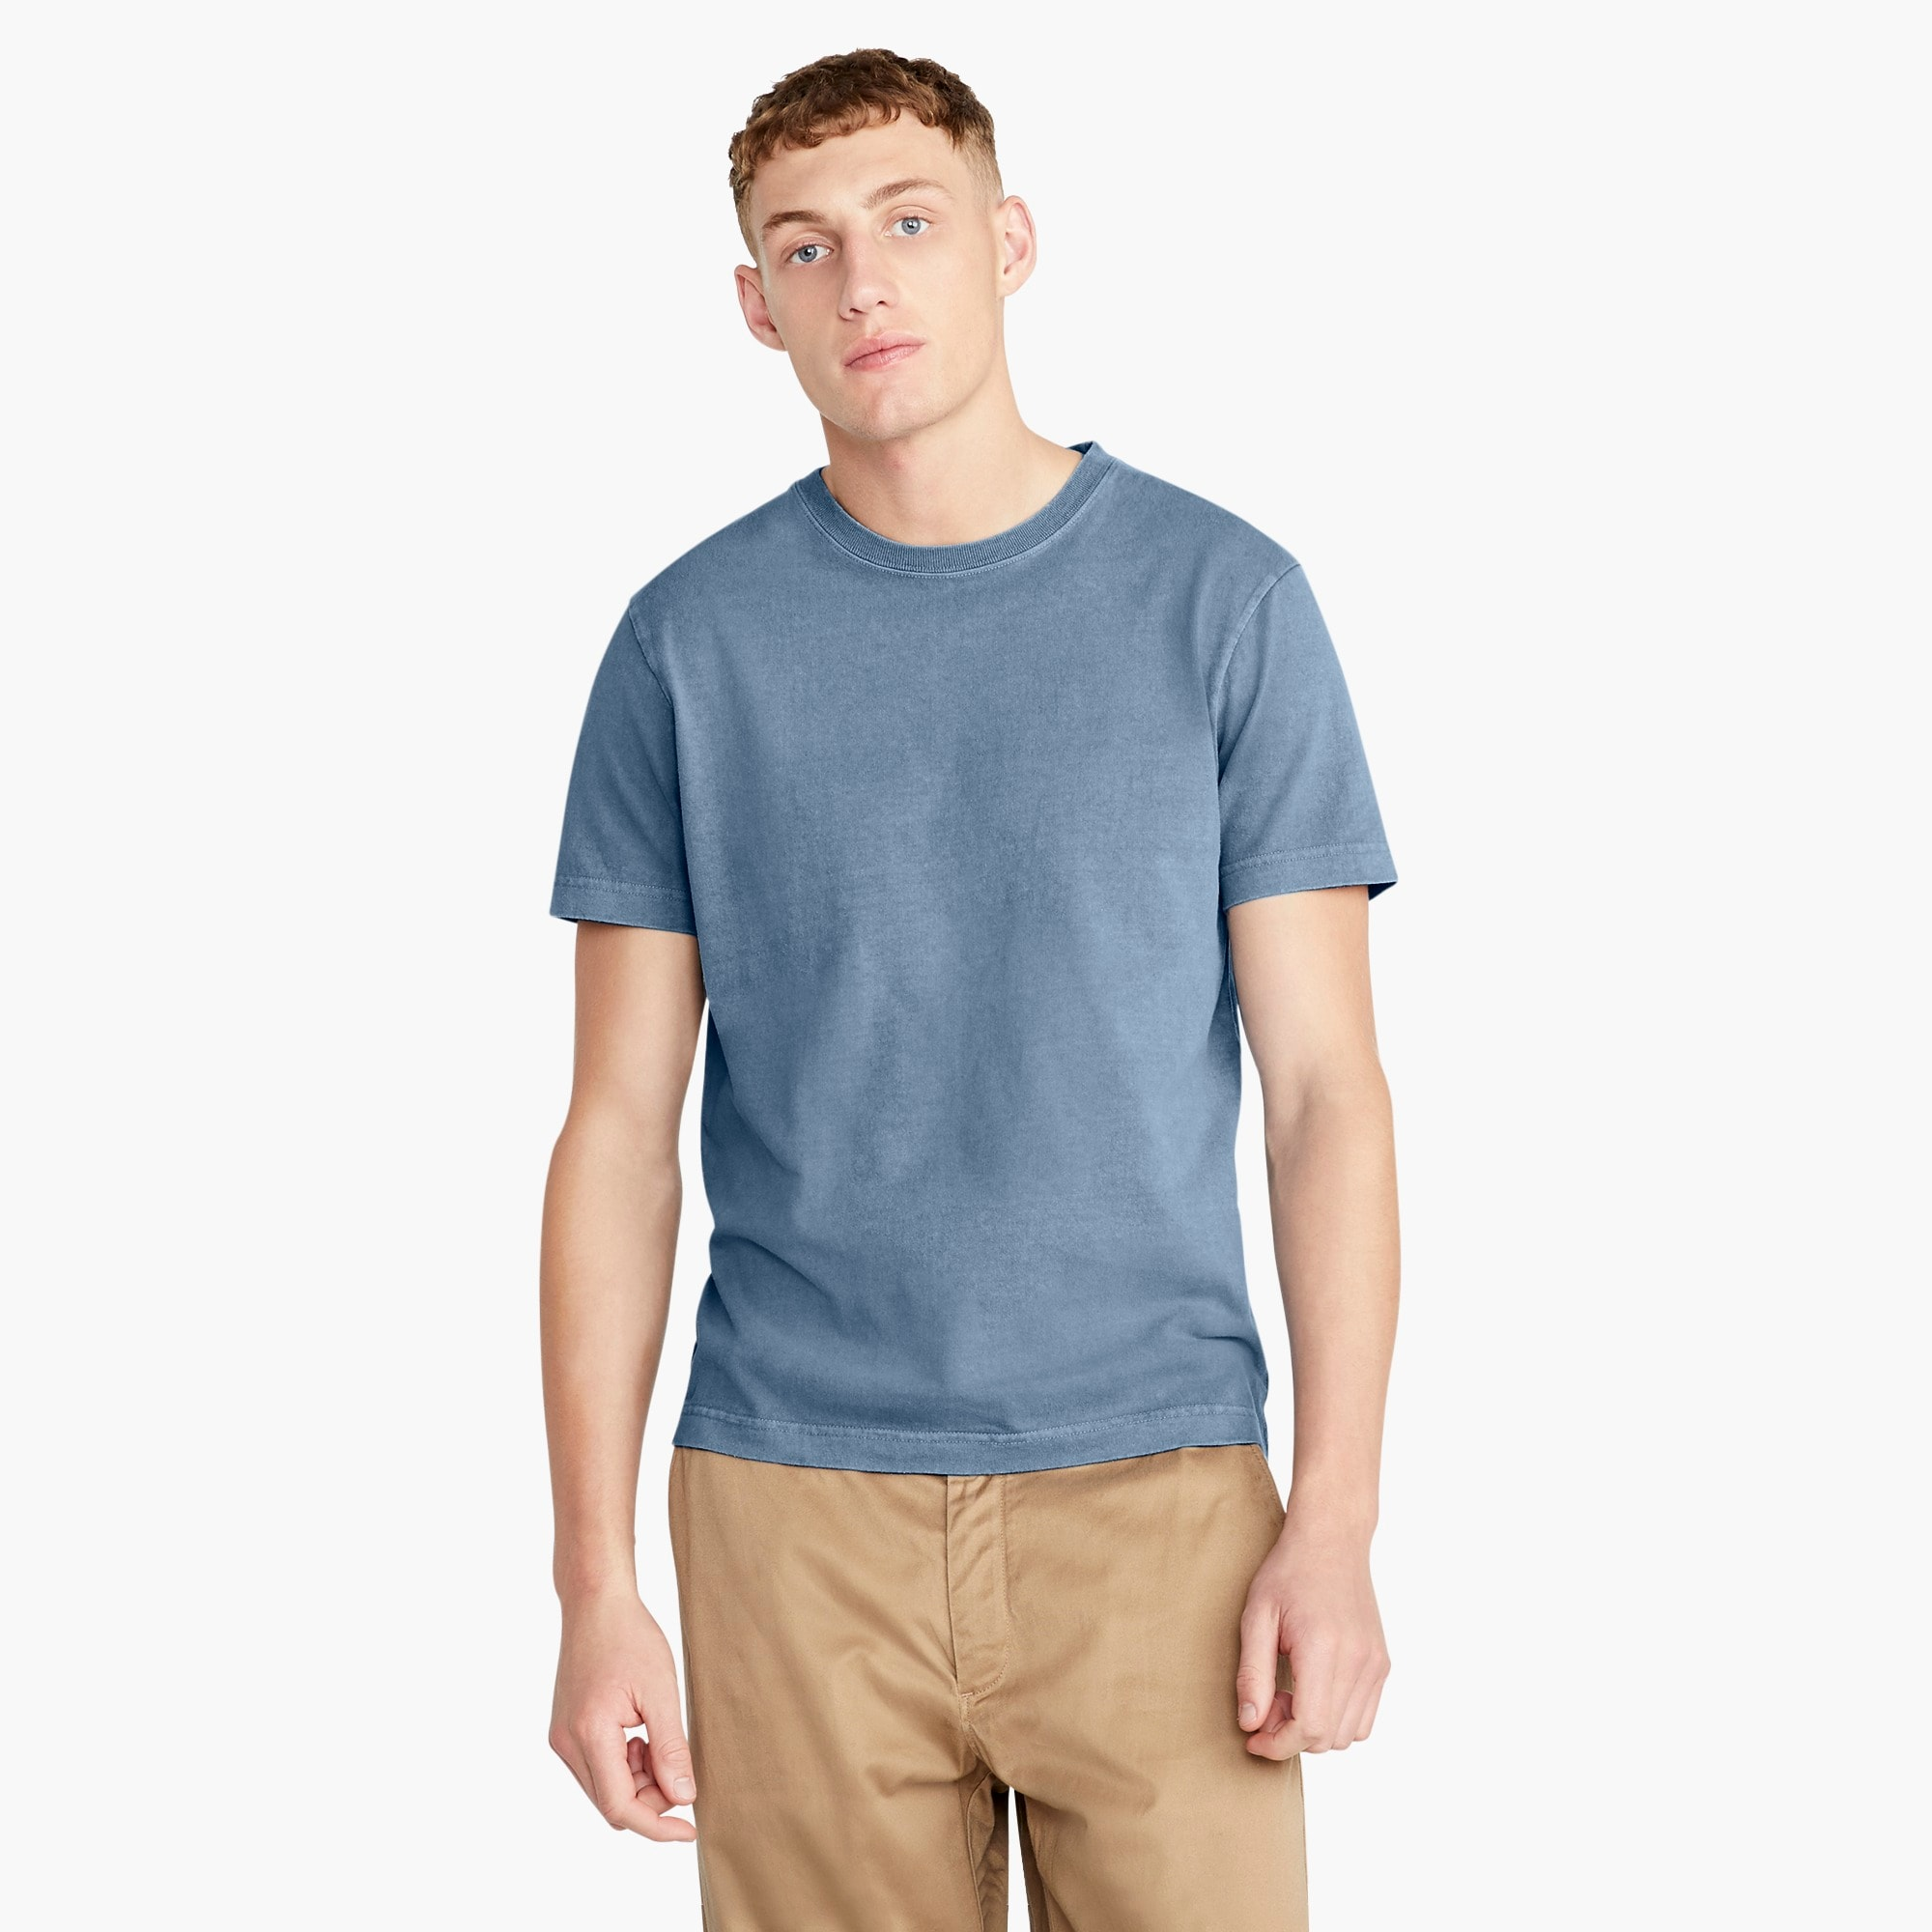 Tall heavyweight cotton T-shirt